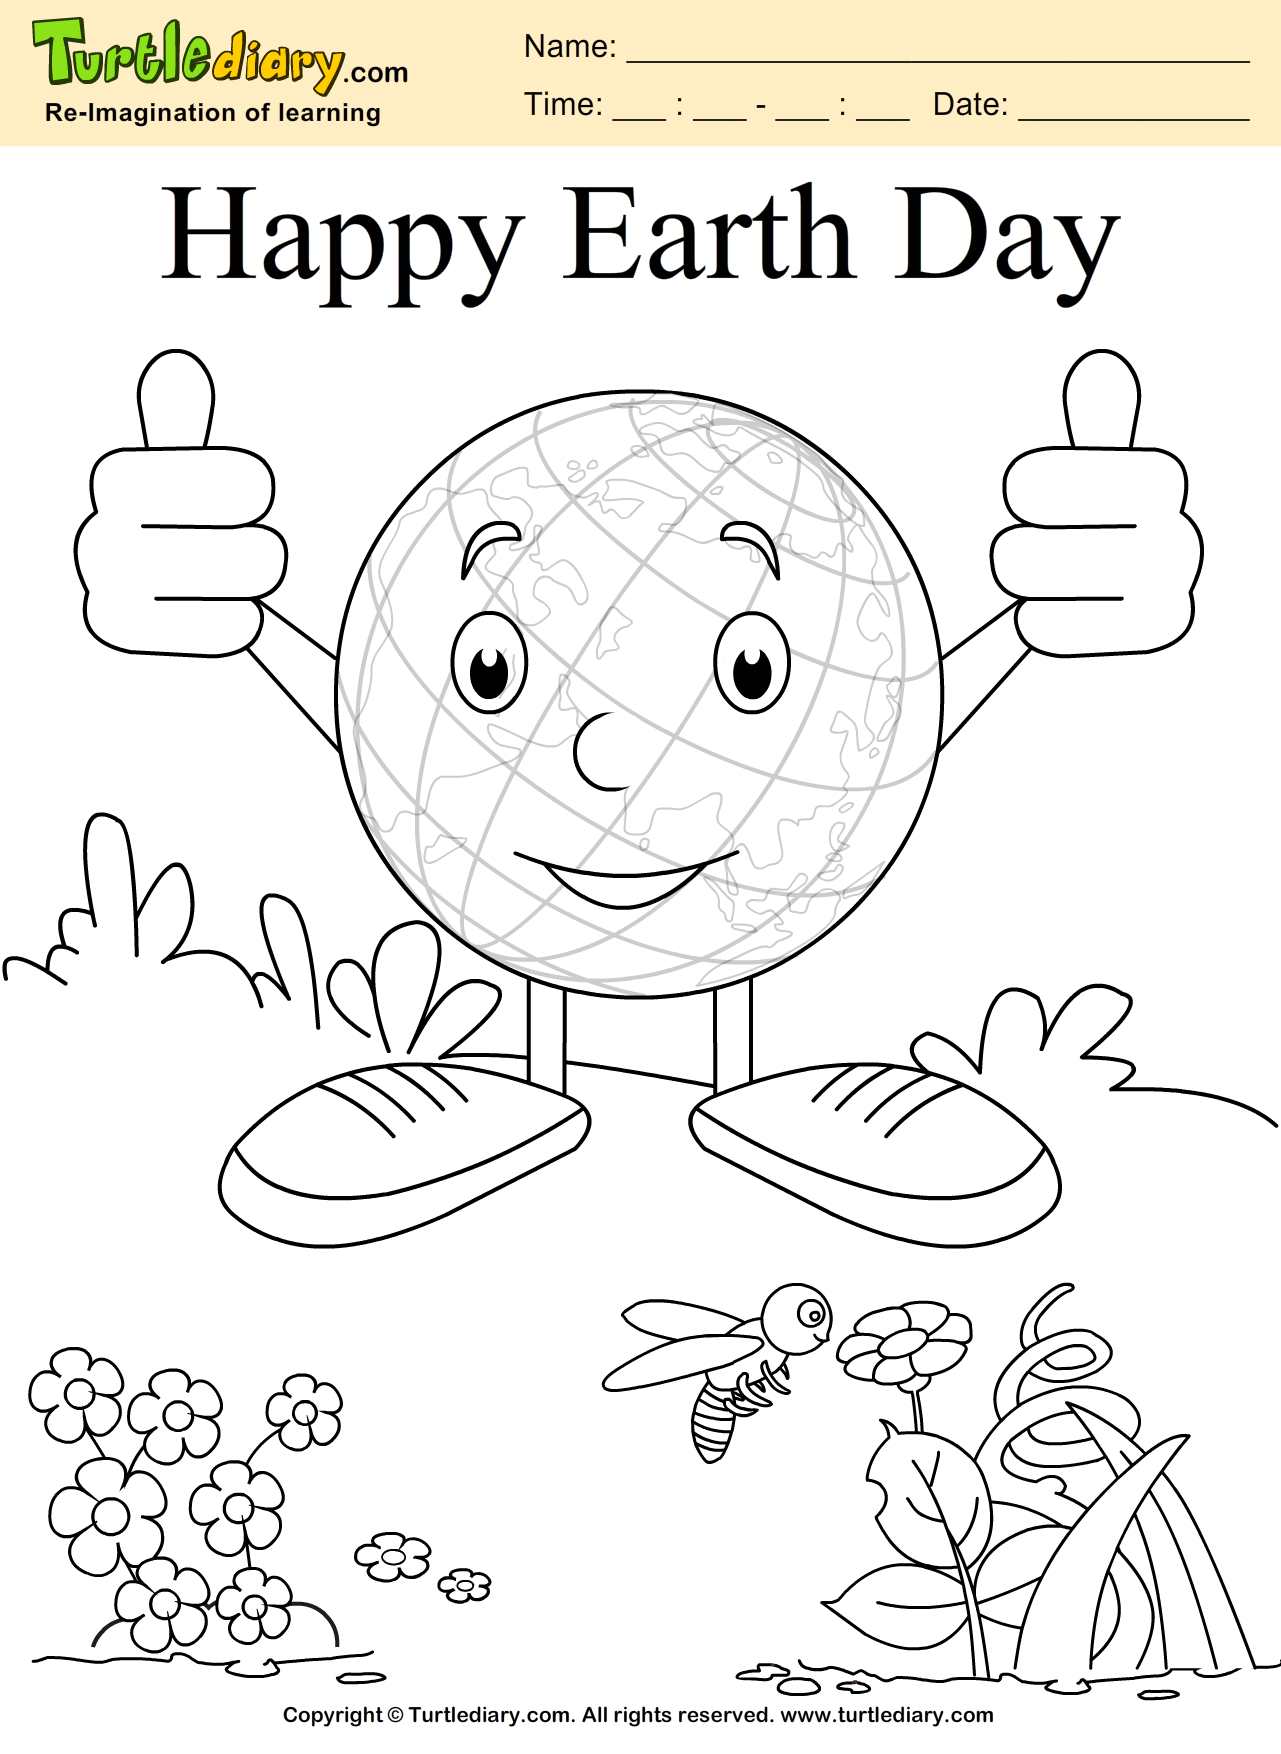 Earth Coloring Sheet | Turtle Diary